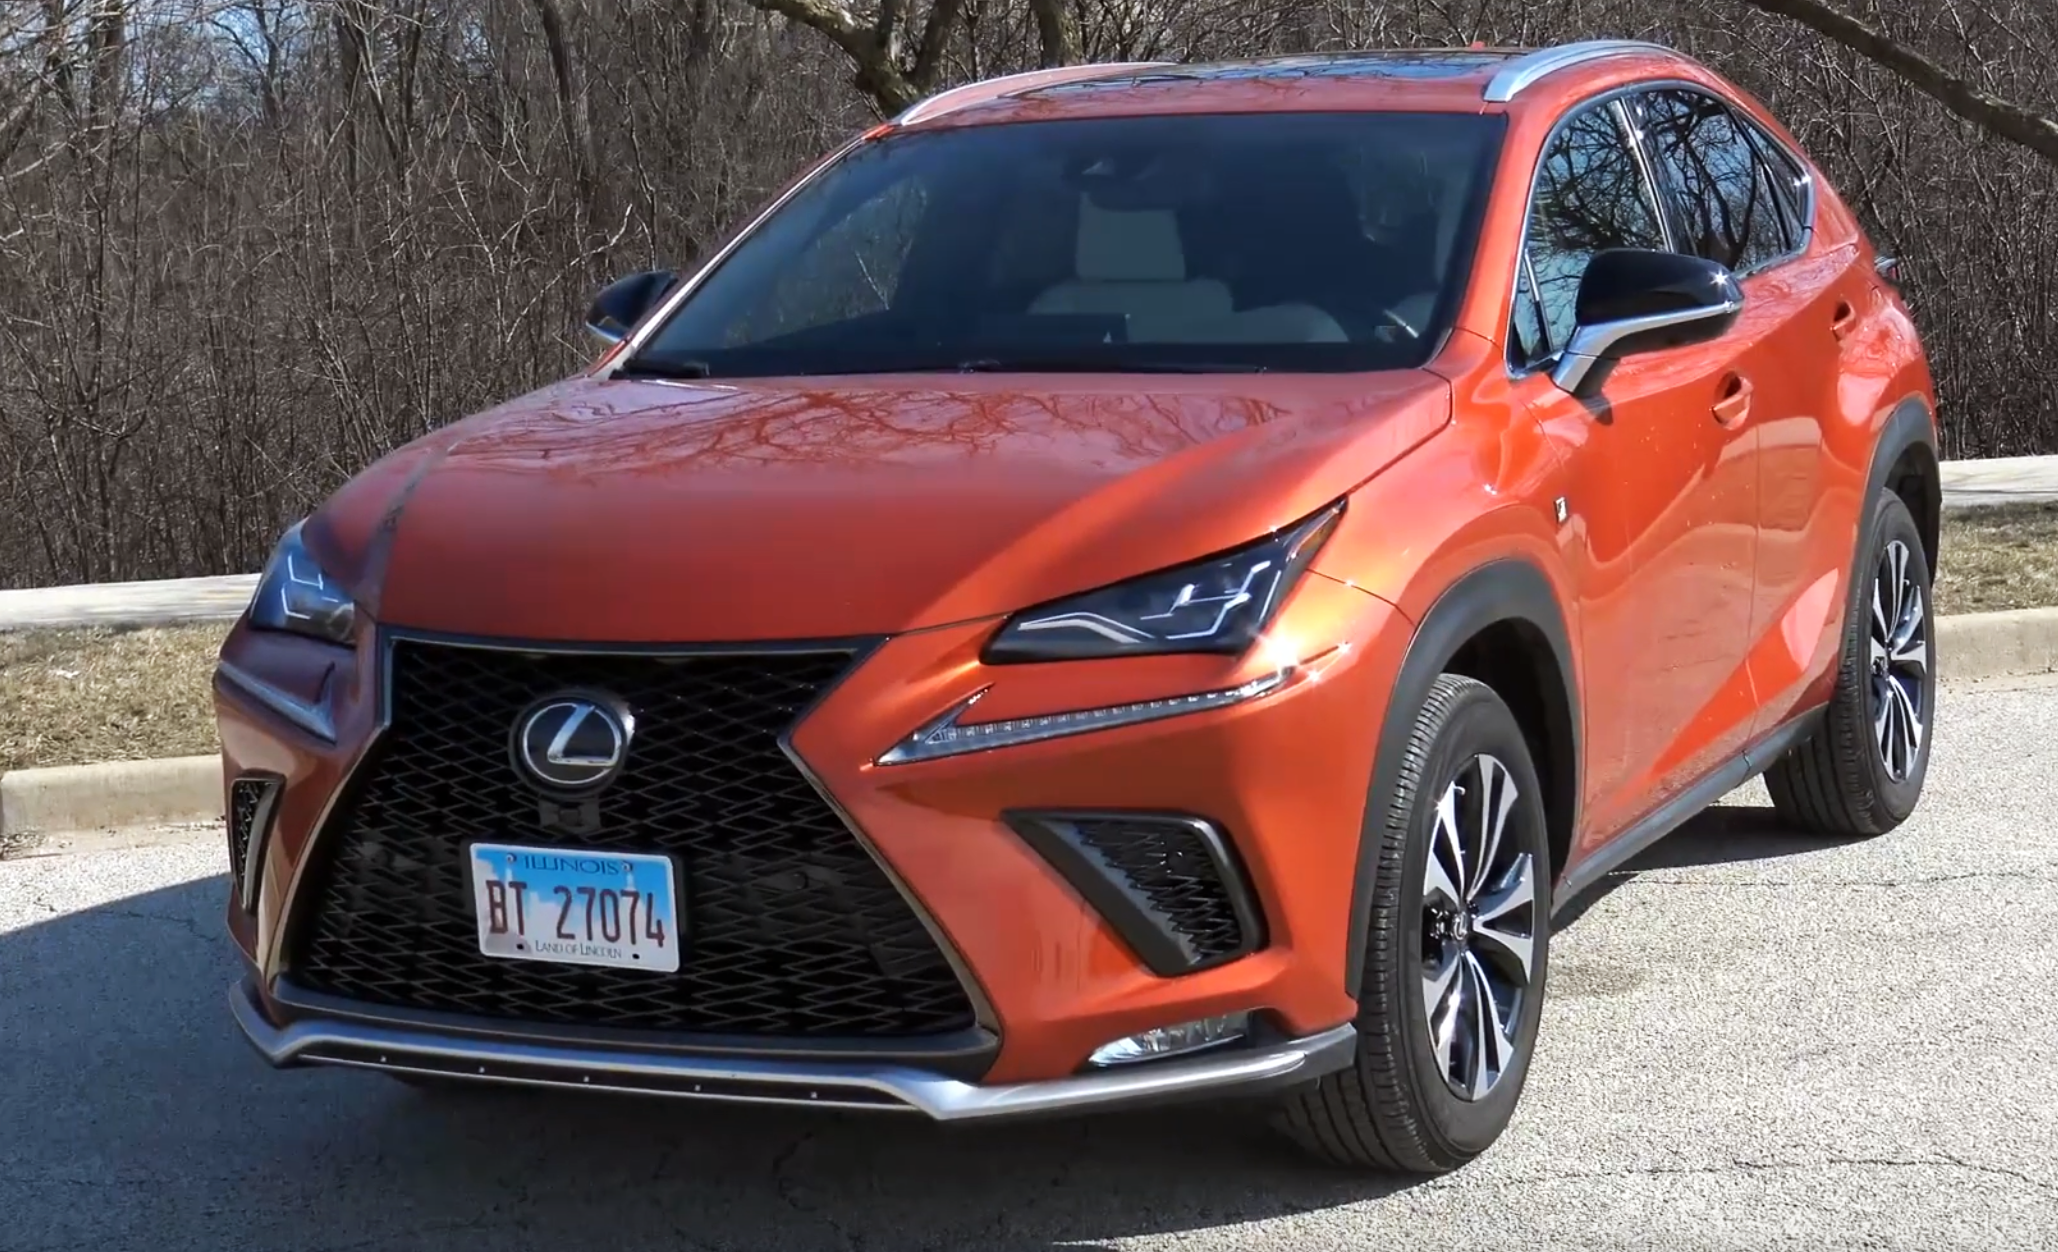 Steve and Johnnie Lexus NX Review